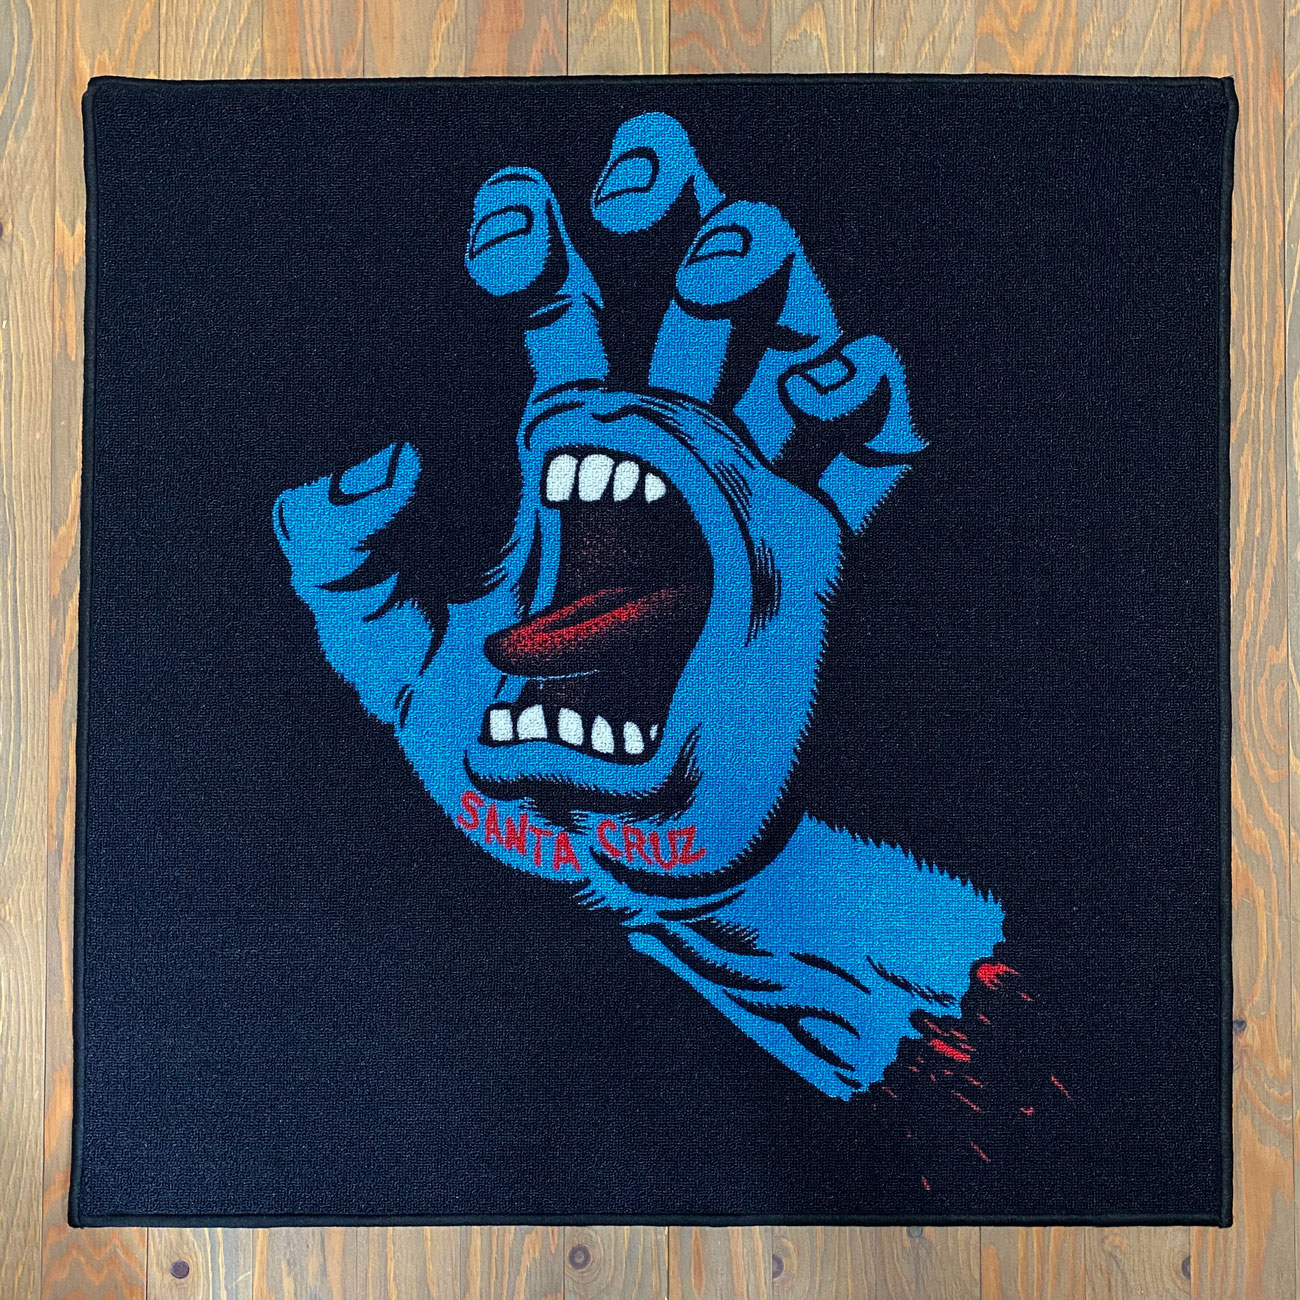 SANTA CRUZ SCREAMING HAND RUG MAT